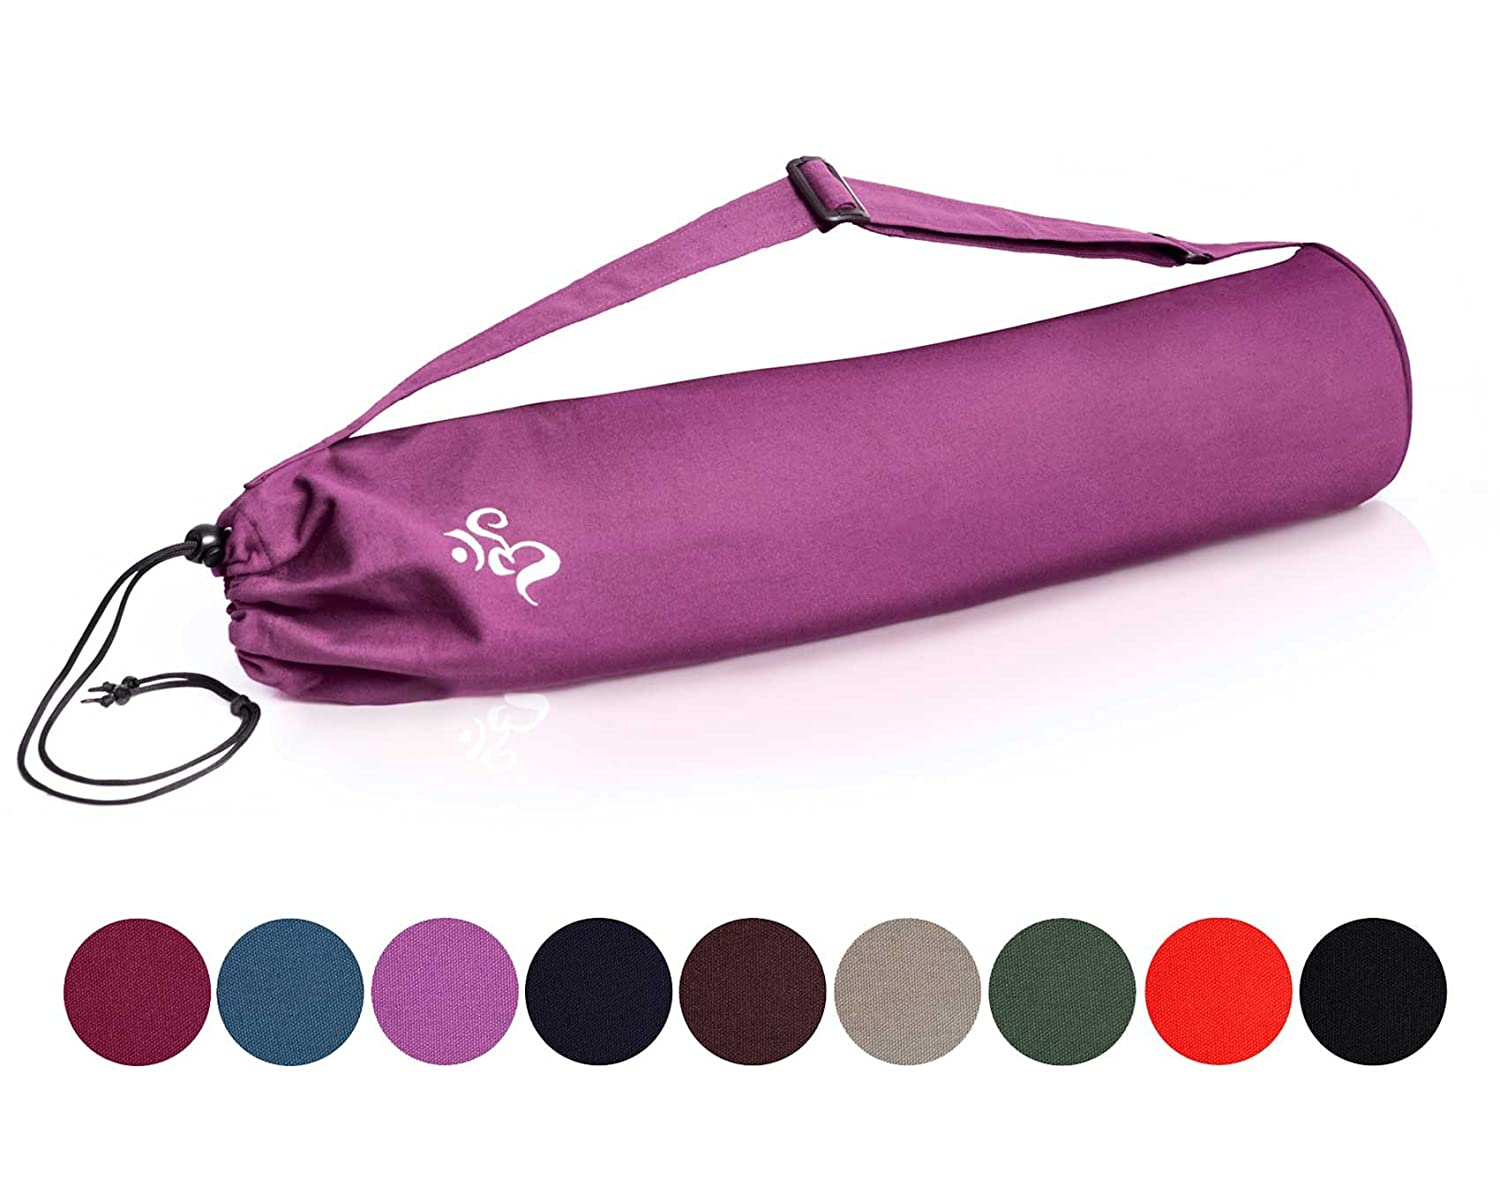 #DoYourYoga Yoga mat bag »Devala« from 100% cotton - Additional Storage Pocket - Machine washable - Suitable for all yoga mats up to the size of 180 cm x 62 cm x 0,6 cm - available in many colours #DoYourSports